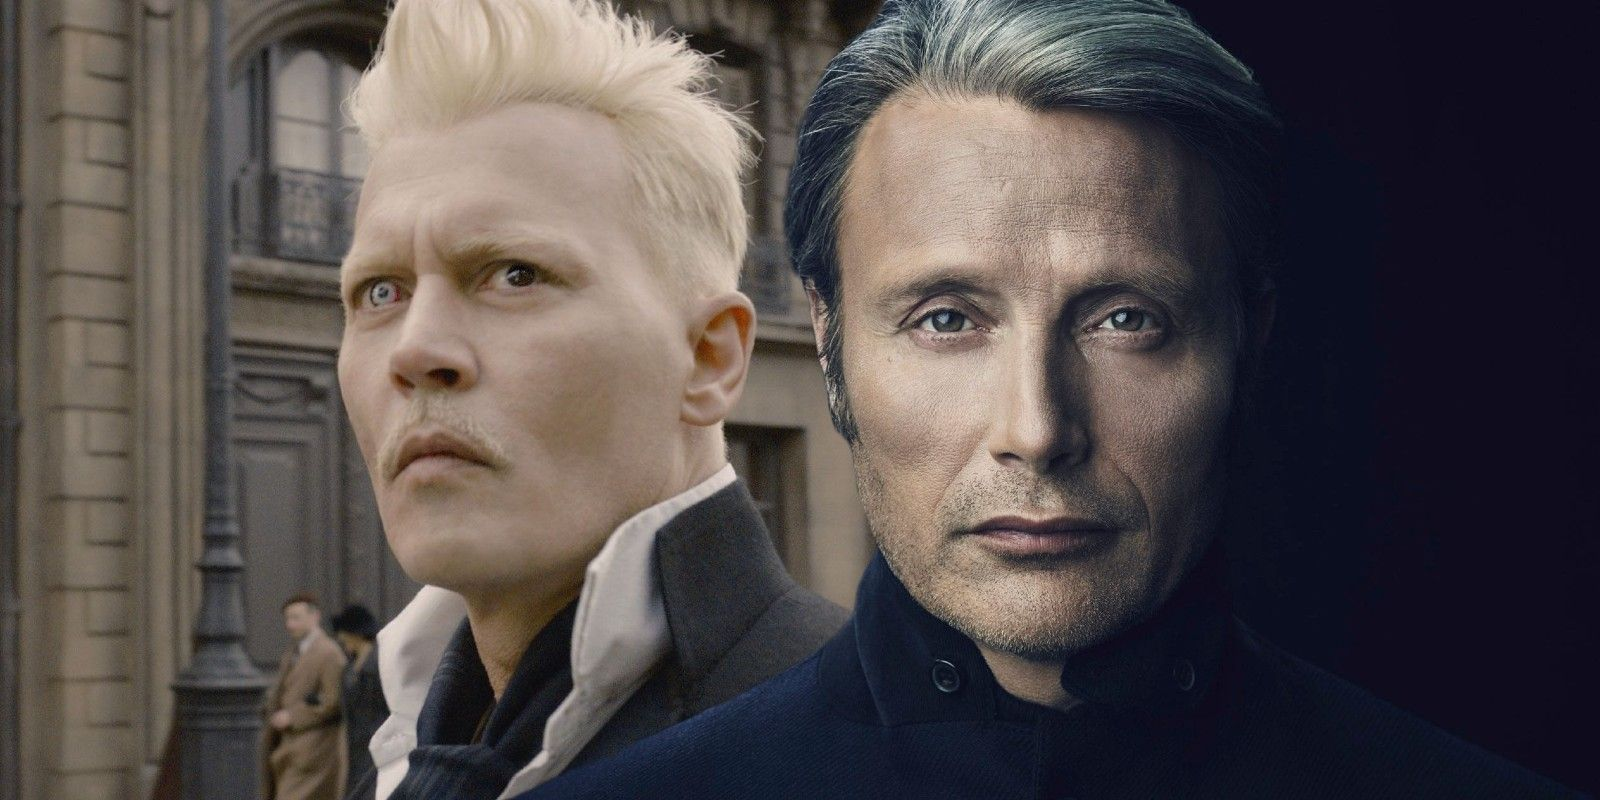 Mads Mikkelsen Talks Replacing Johnny Depp In 'Fantastic Beasts' – Has He Reached Out To Him?